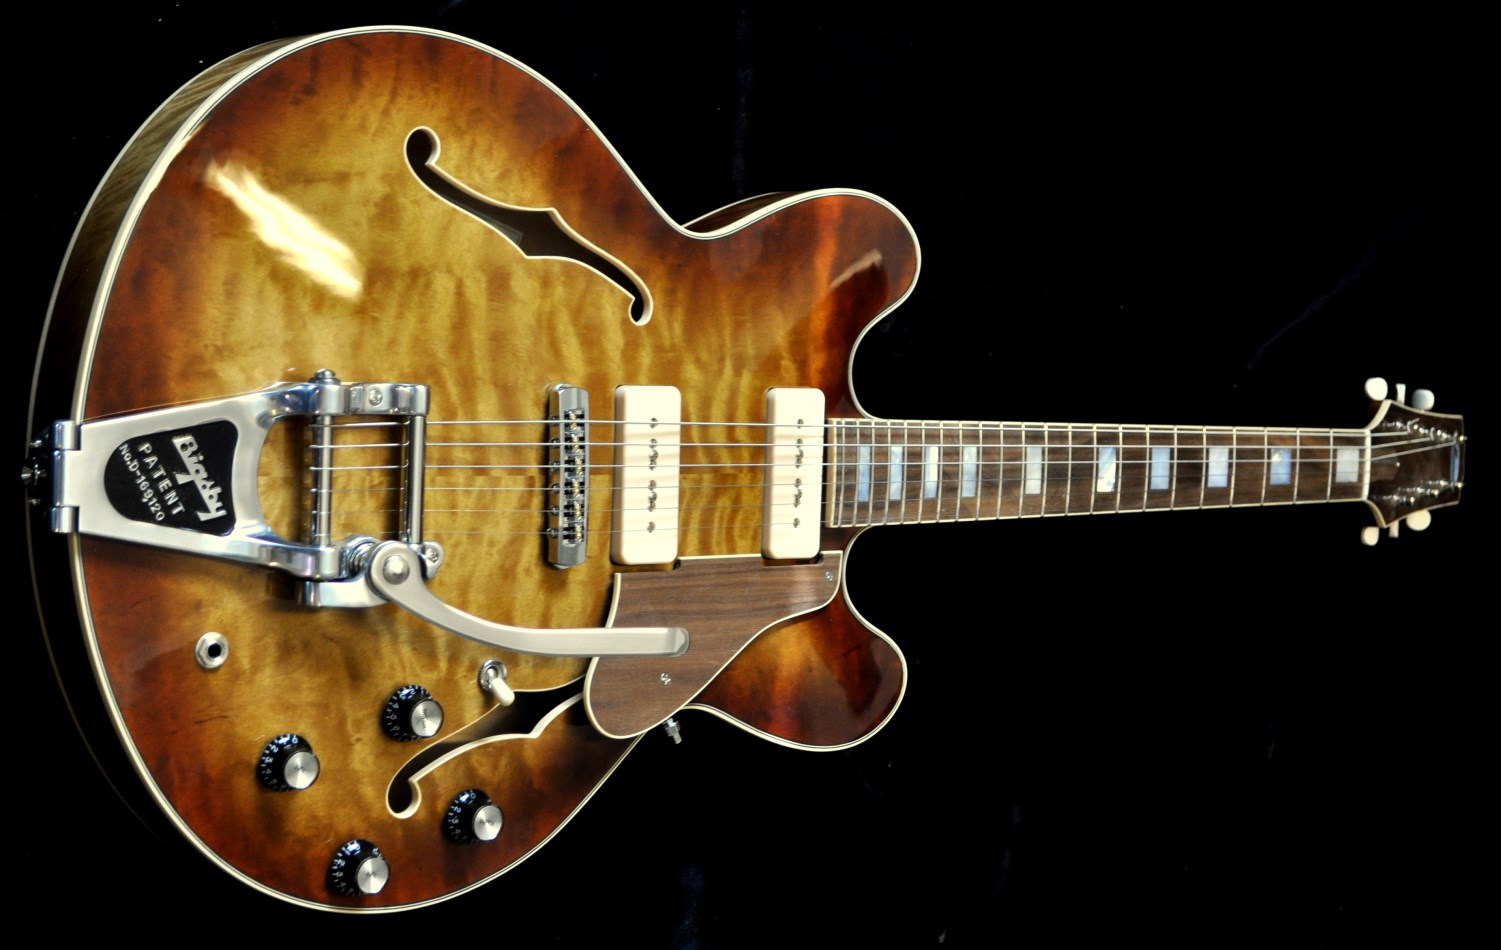 NWS Semi Hollow, Sunburst